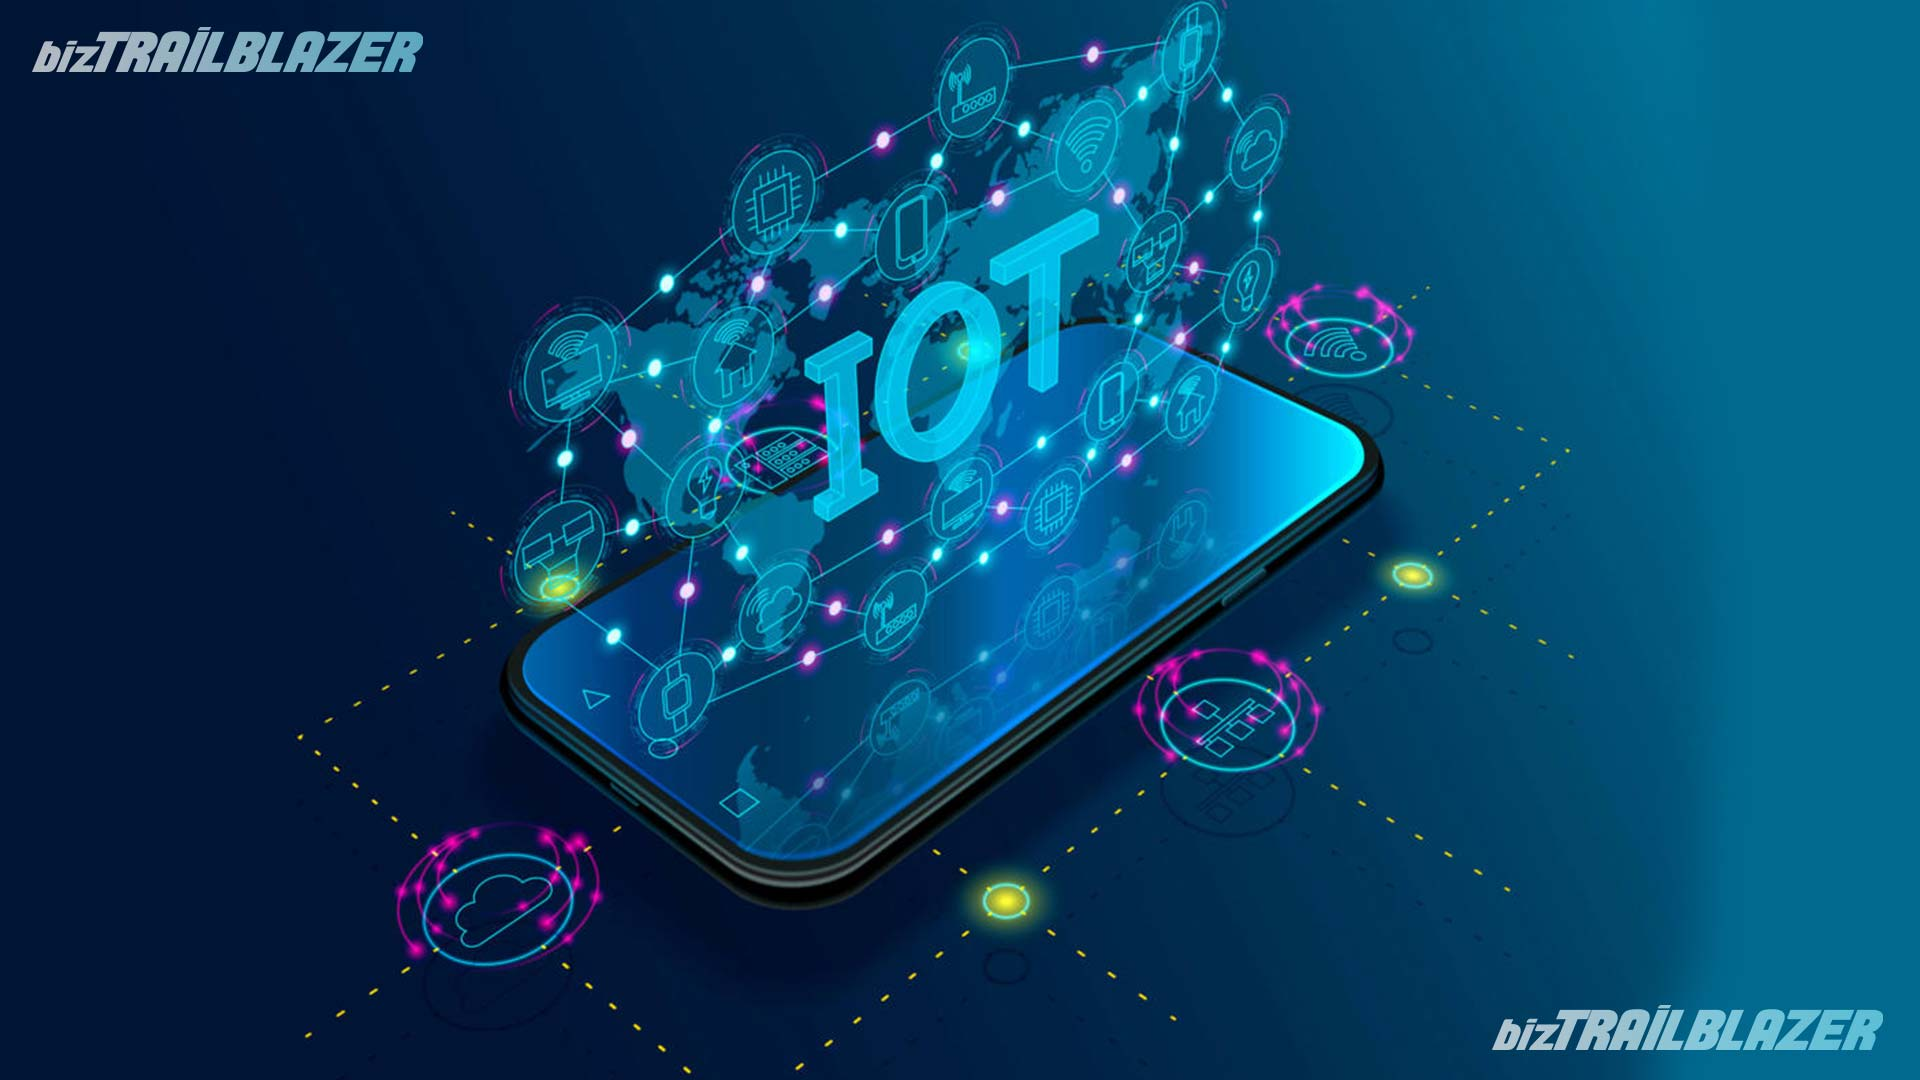 BizTrailBlazer-Blog-Top-5-IoT-Trends-that-are-Changing-the-World